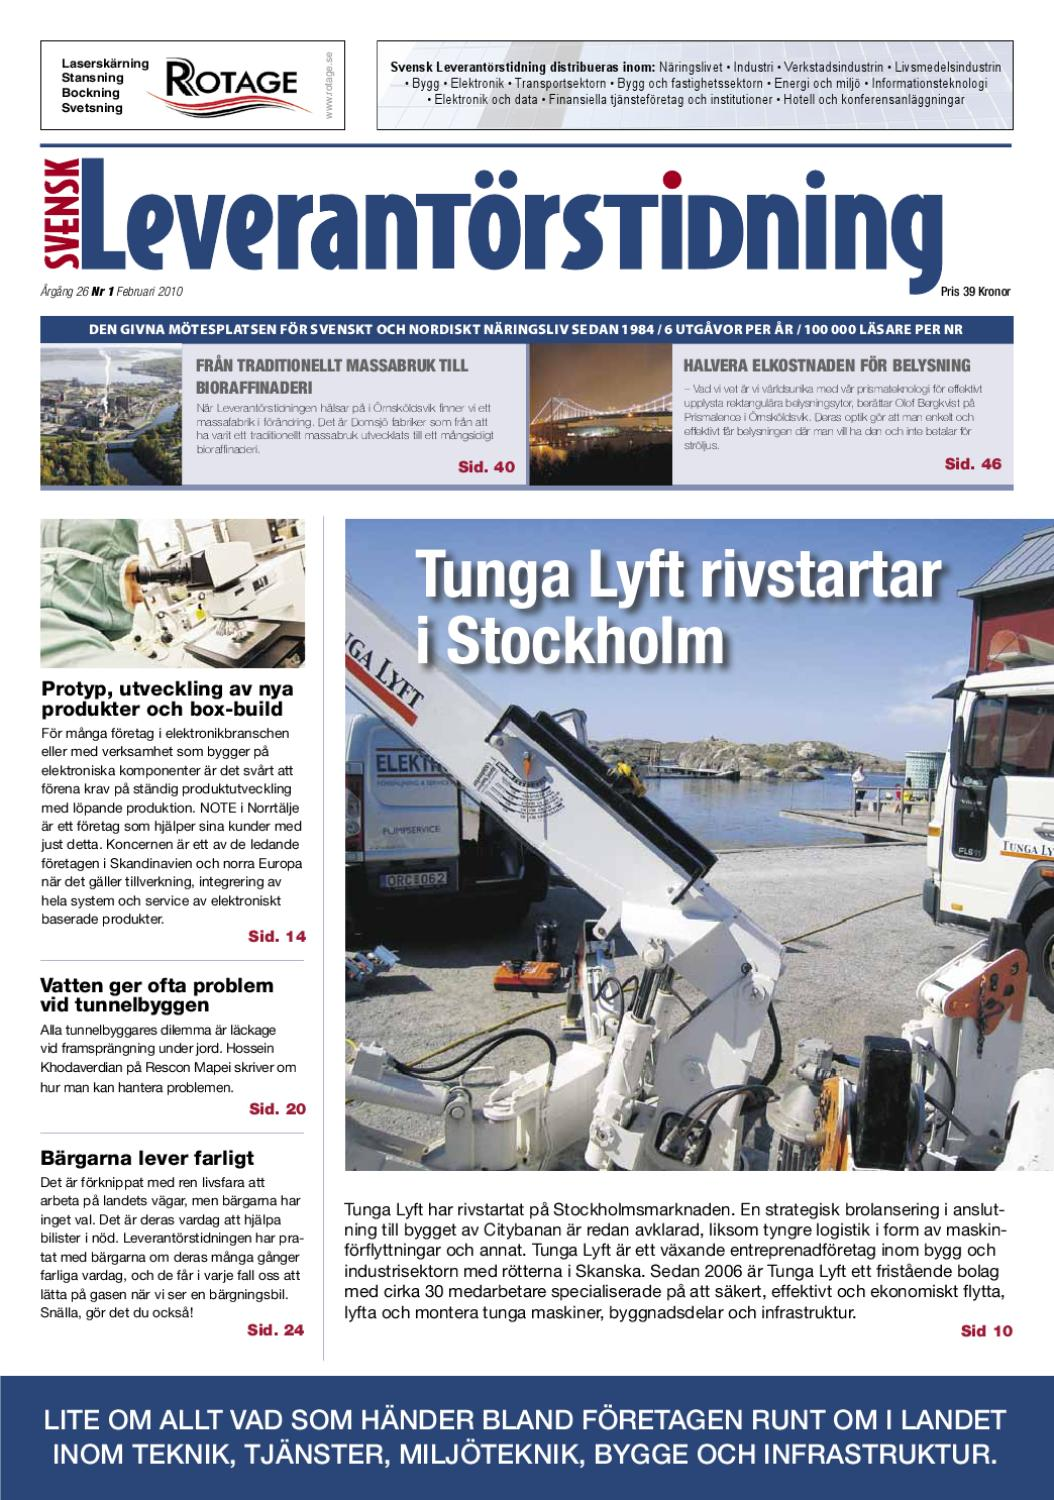 Svensk Leverantörstidning nr-1 2010 by Hexanova Media Group AB - issuu 8d8e29cdb0d61